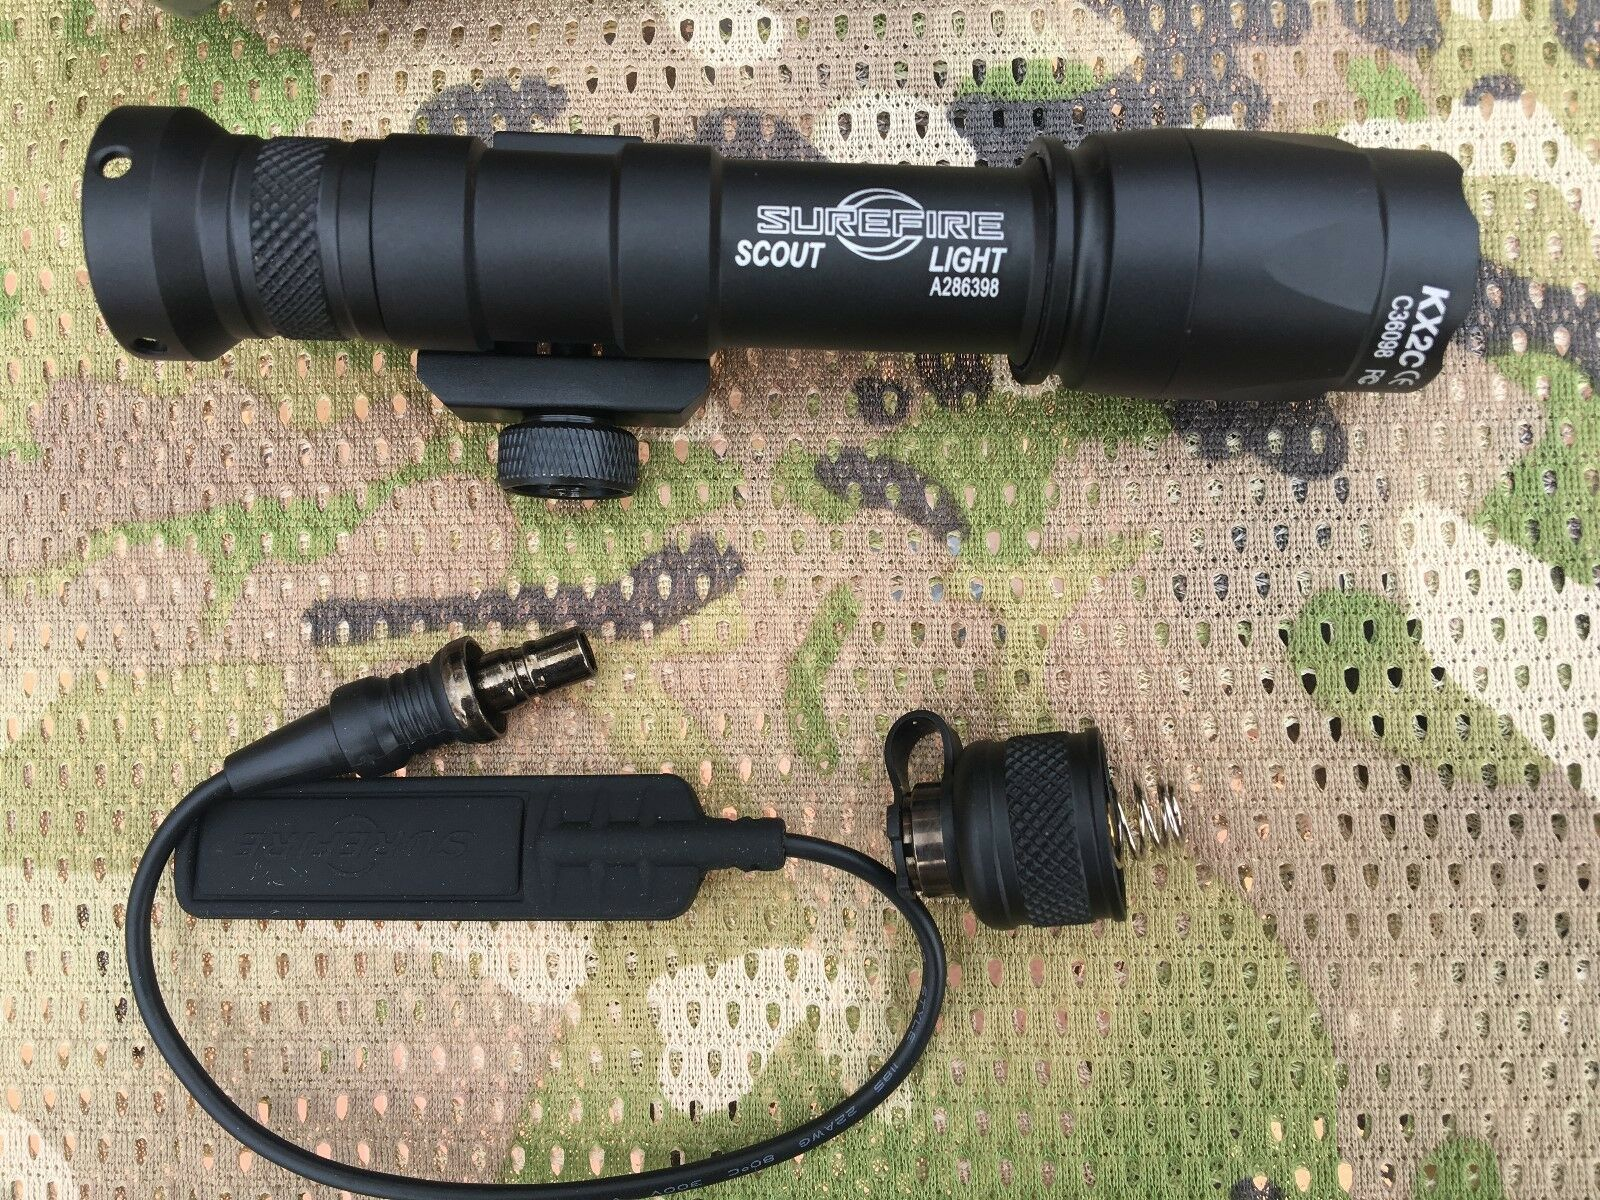 Tactical Light with Pressure Pad SF M600C Scout Light